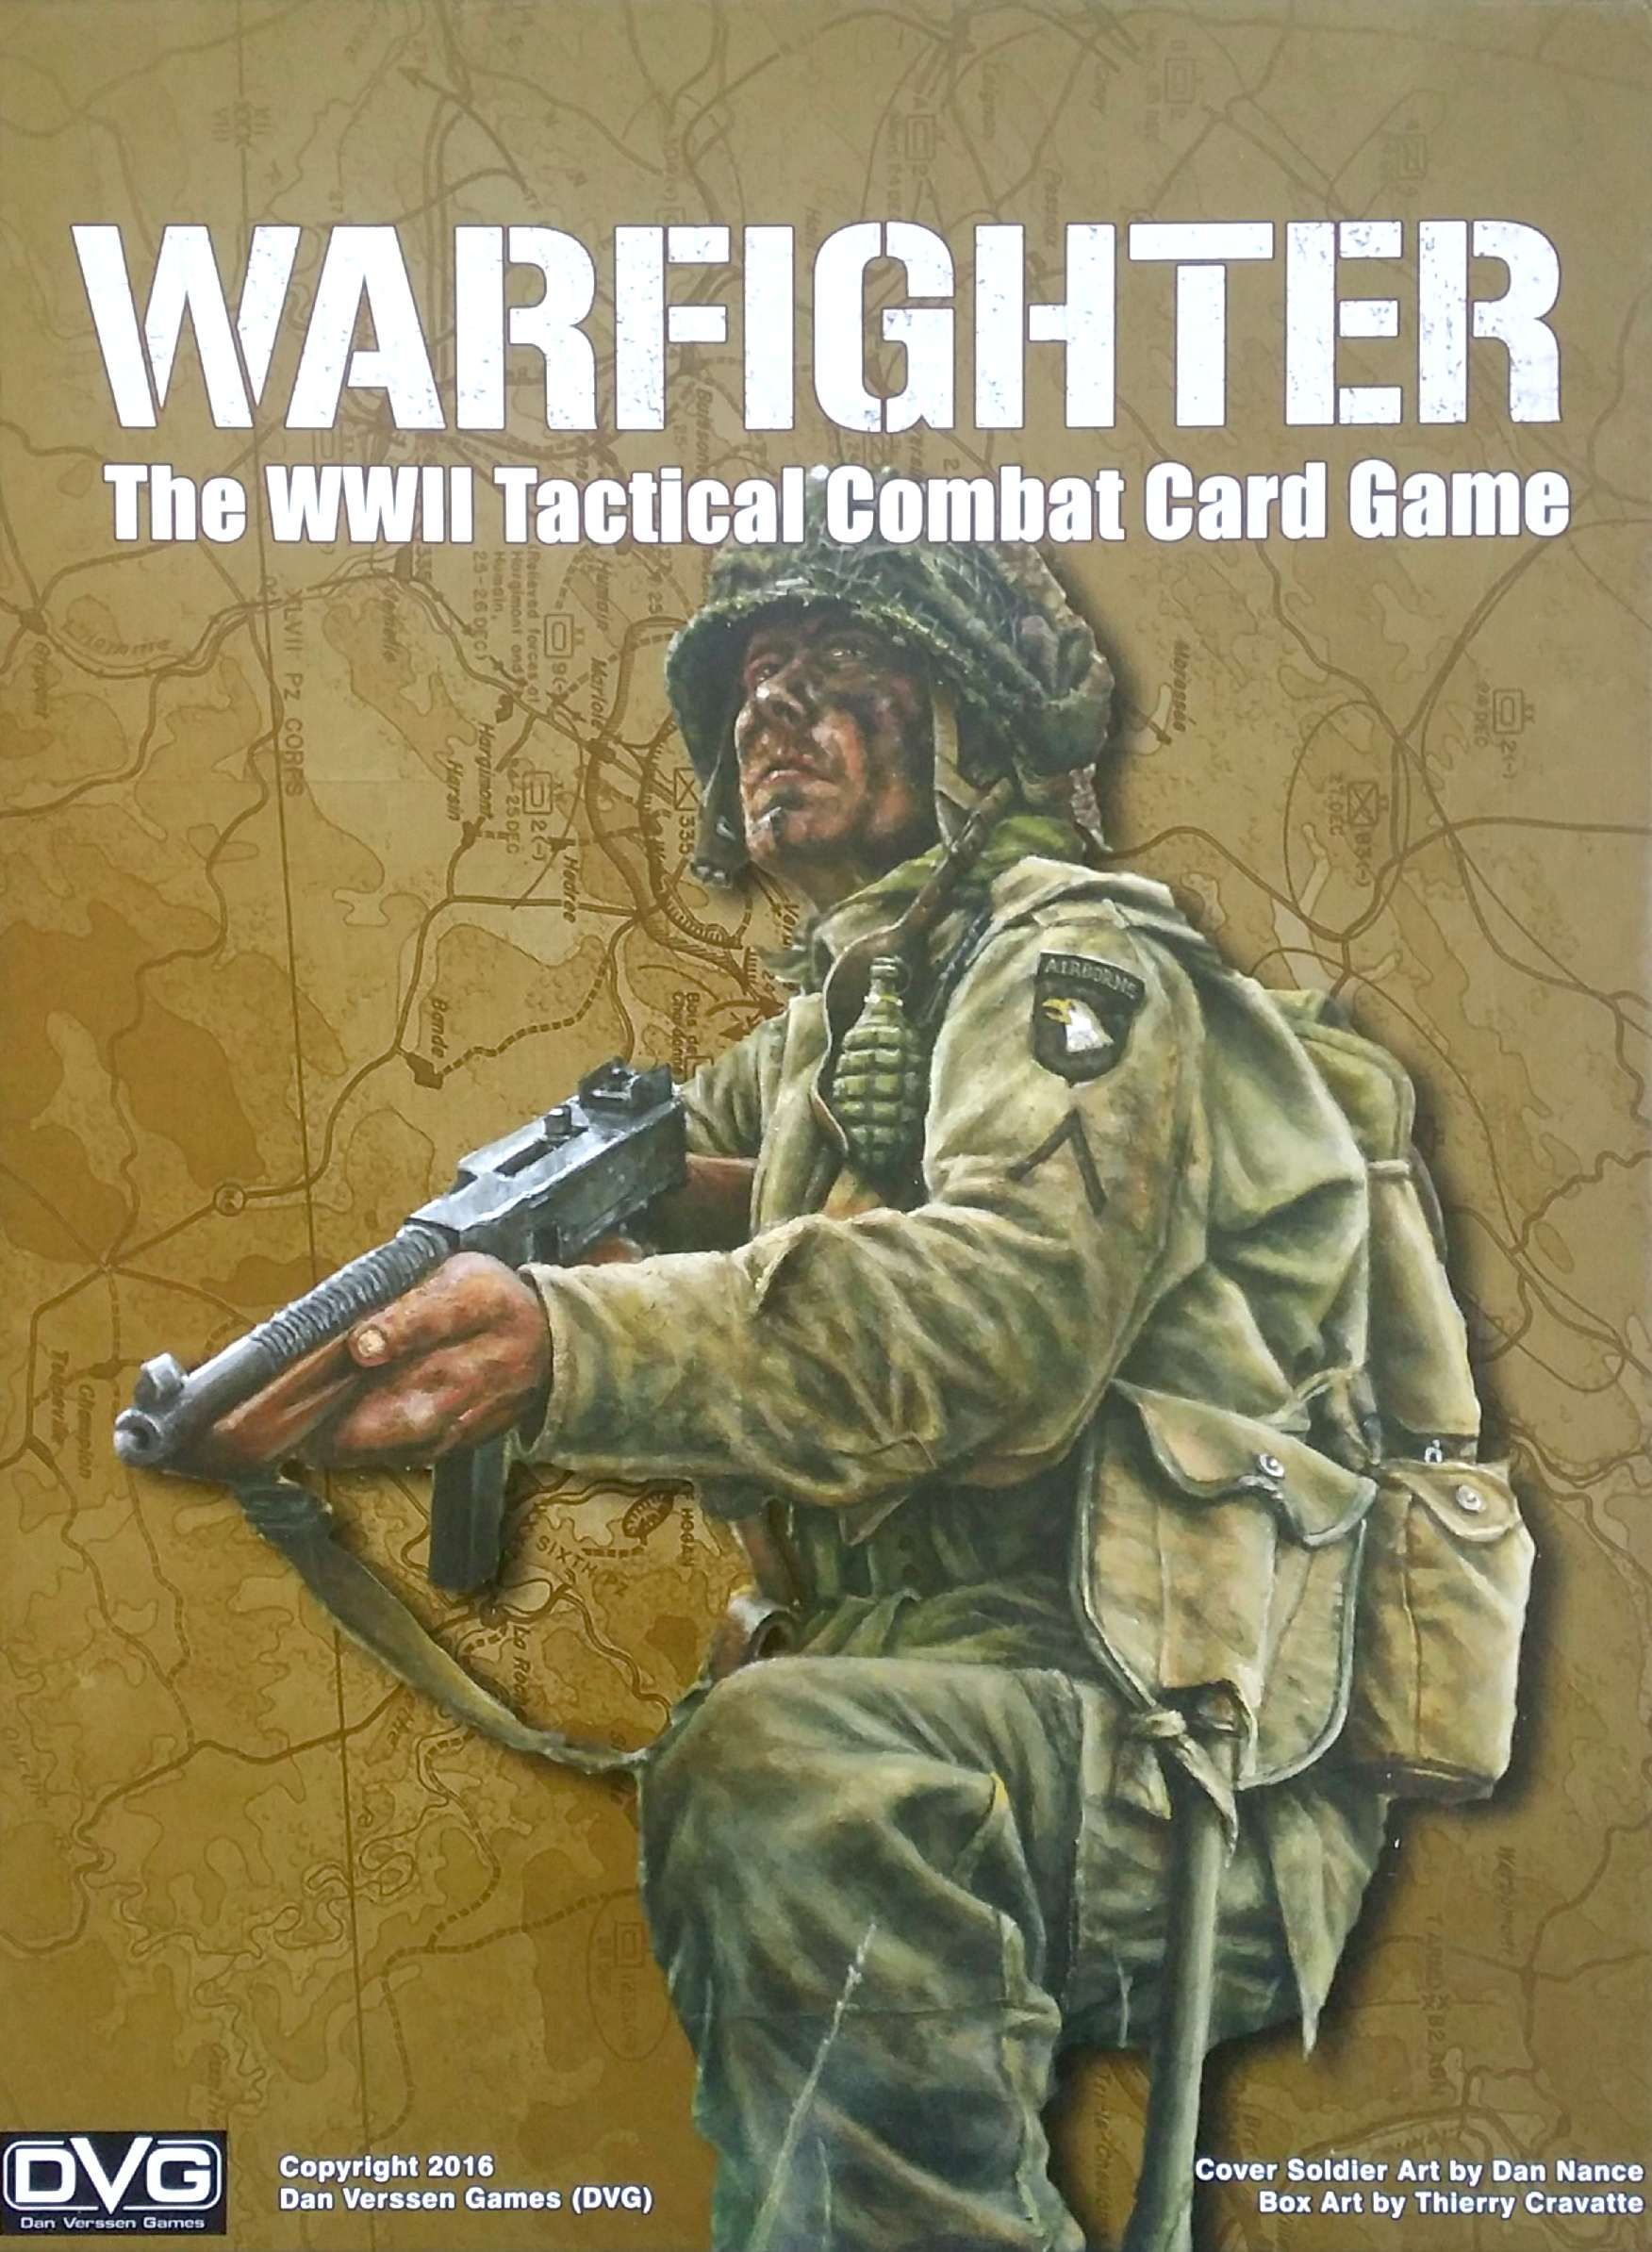 Main image for Warfighter: The WWII Tactical Combat Card Game